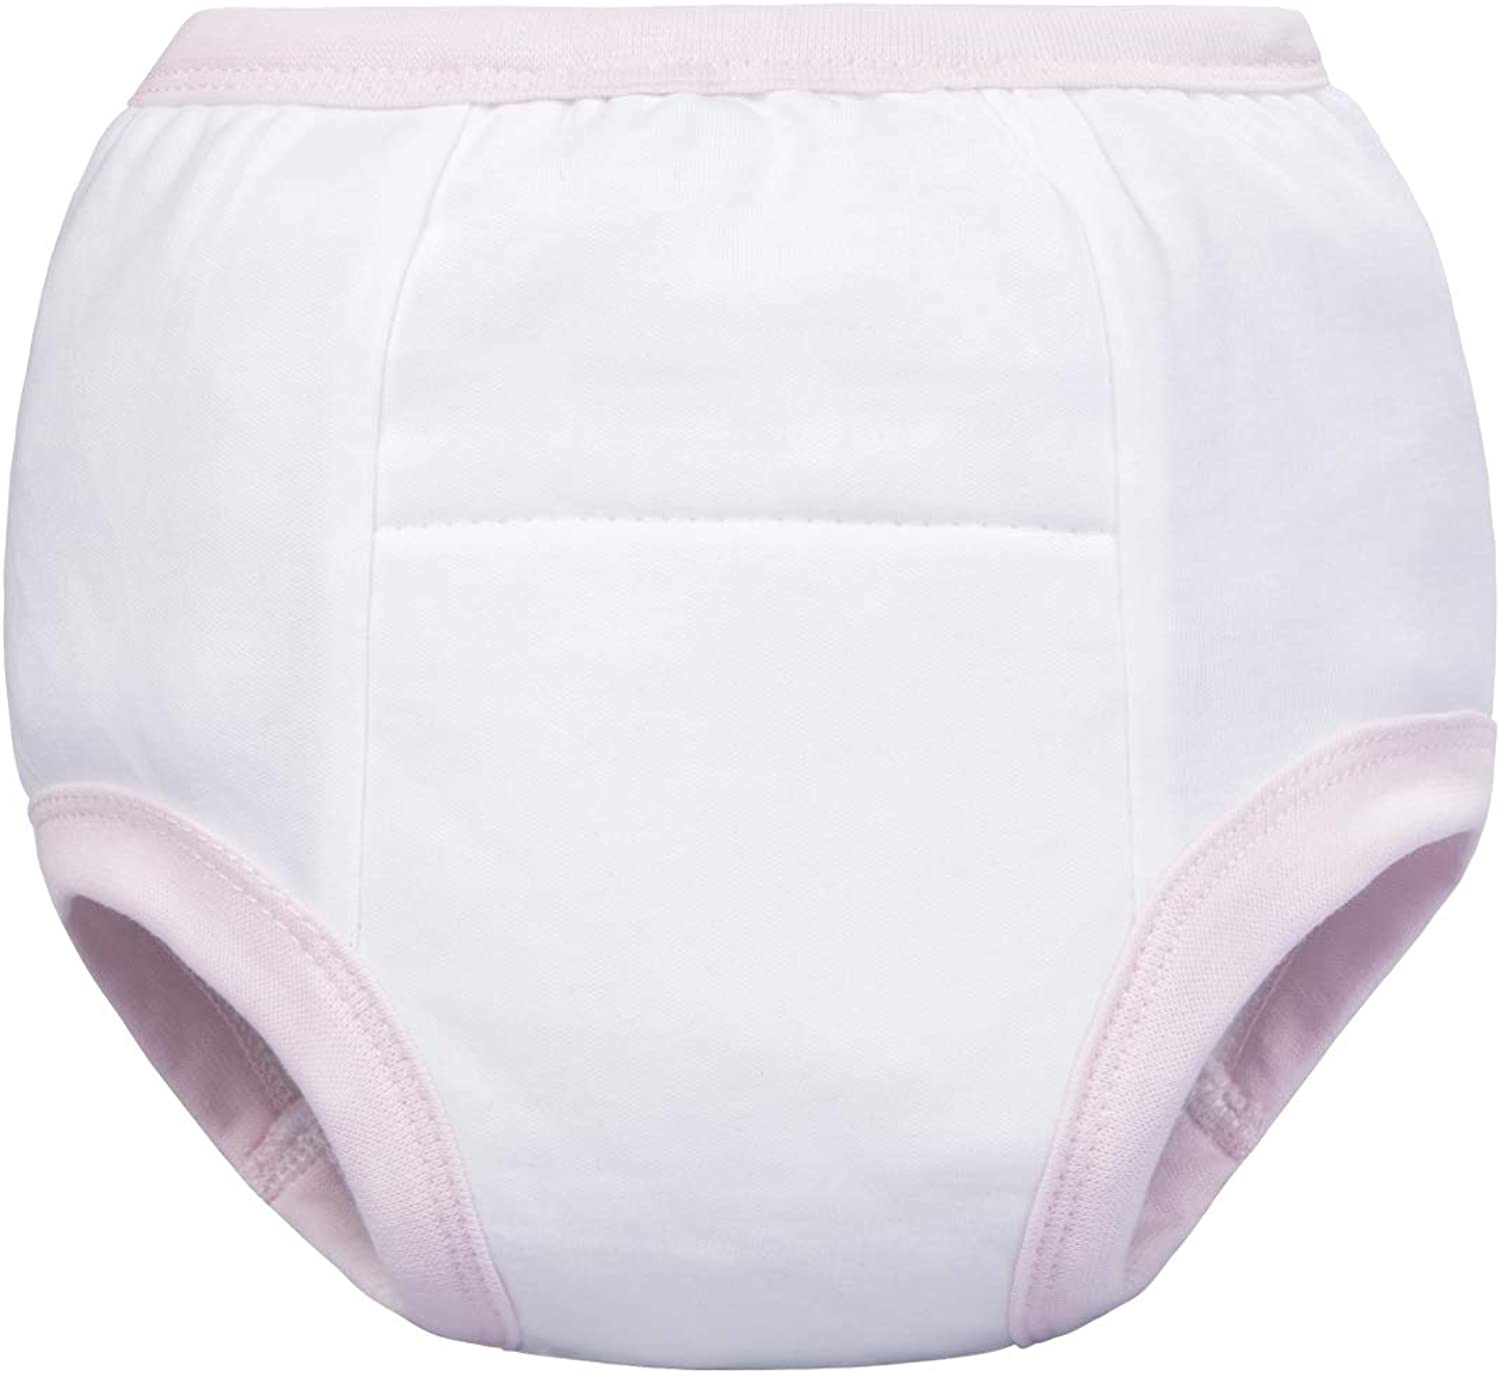 Yinson 6-Pack Layered Cotton Training Pants Potty Underwear for Toddler Boys 12M-4T